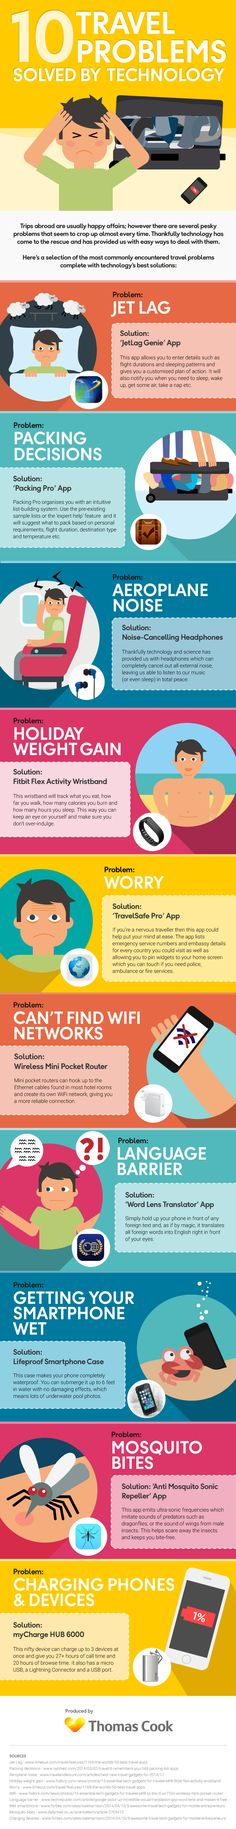 10 Travel Problems Solved by Technology [Infographic]